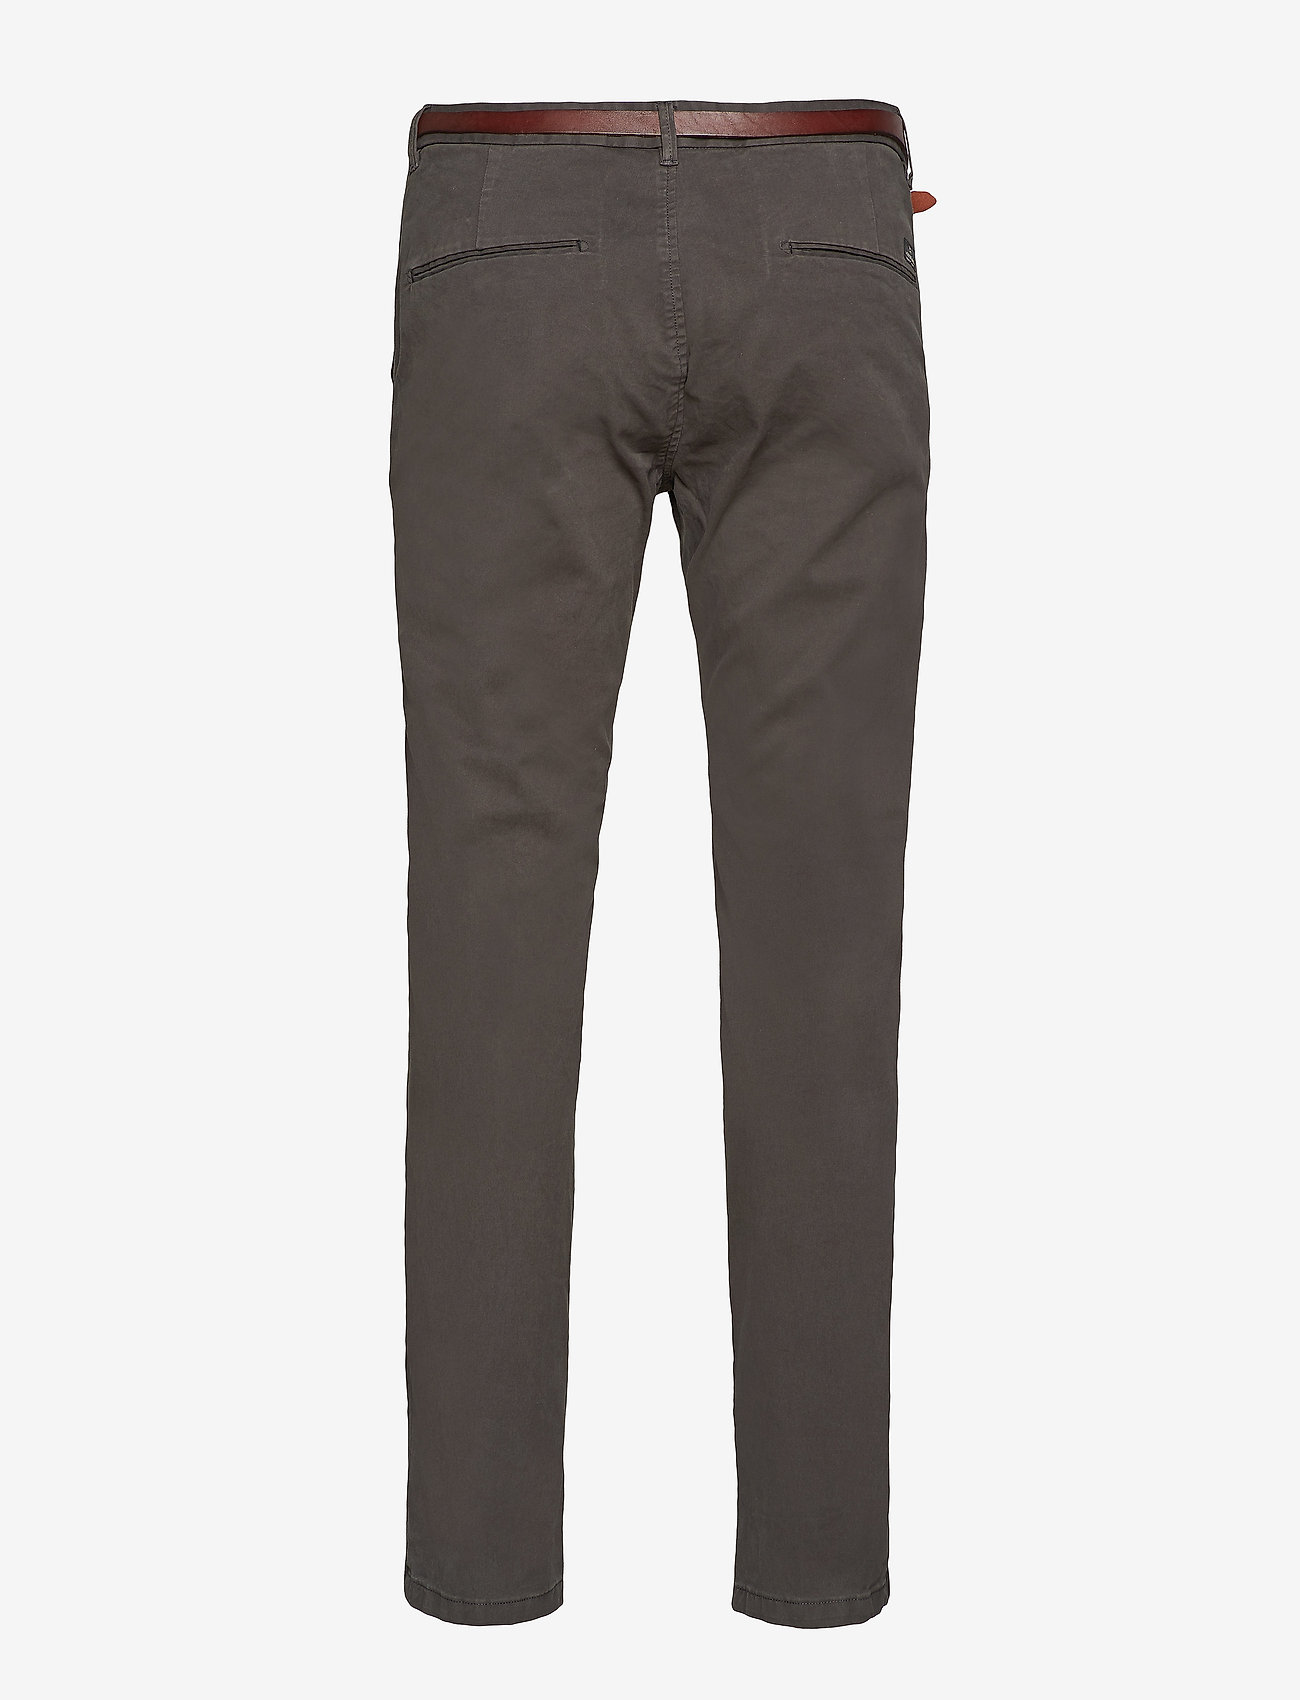 Scotch & Soda - Slim fit cotton/elastan garment dyed chino pant - chinos - charcoal - 1